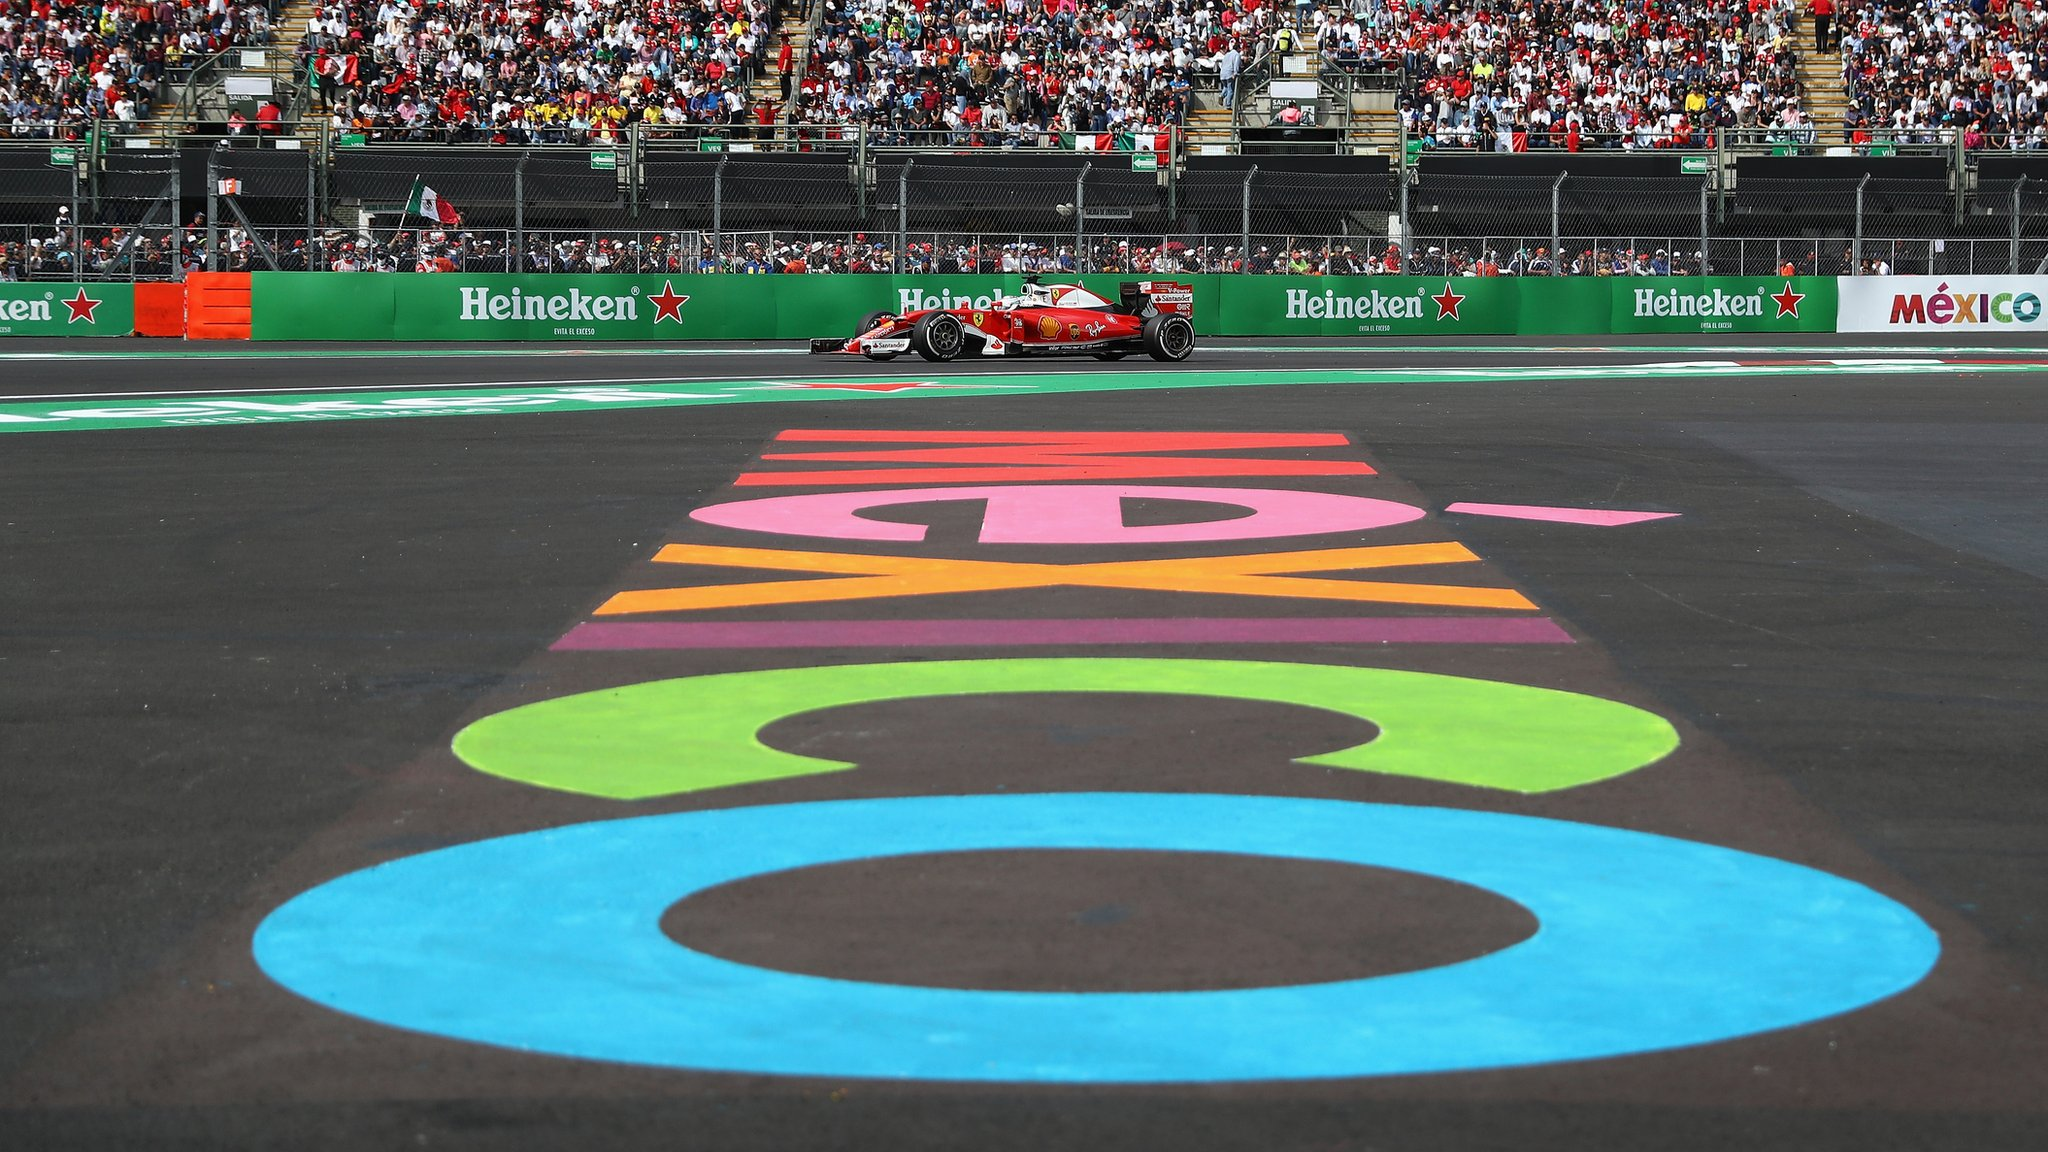 Mexican Grand Prix will go ahead as planned despite earthquake